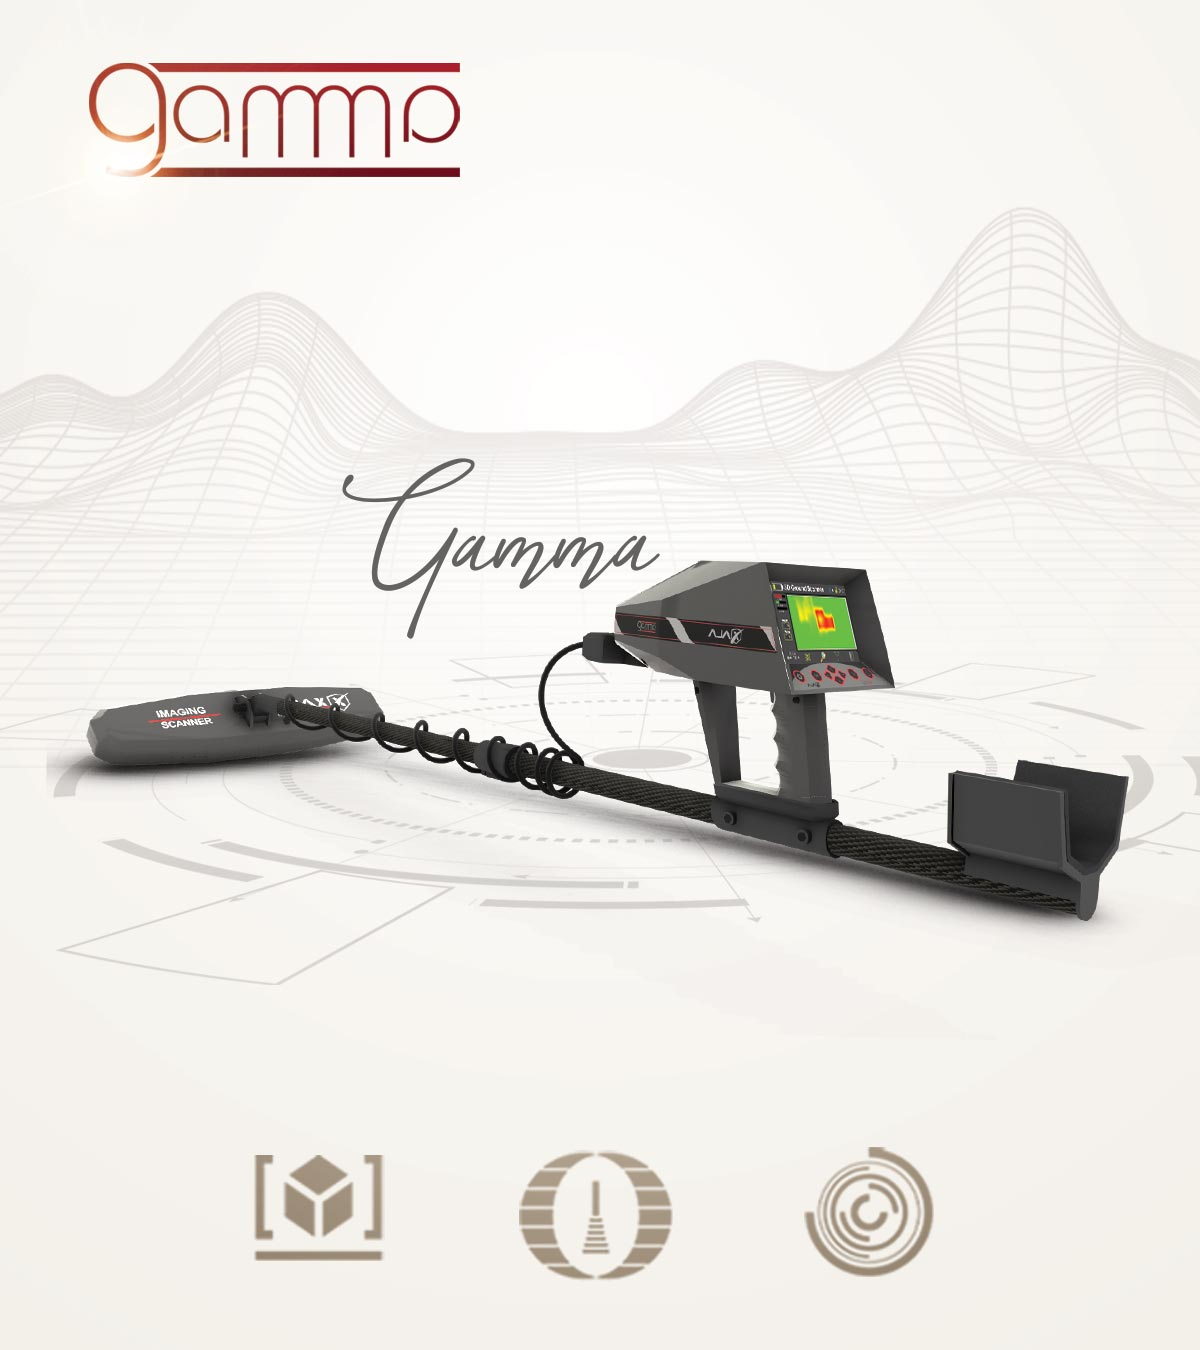 Ajax Gamma Metal Detector & Treasures and Gold Detector with 3 different detection and exploration systems Gradiosmart system, Live Scan and 3D Ground Scanner